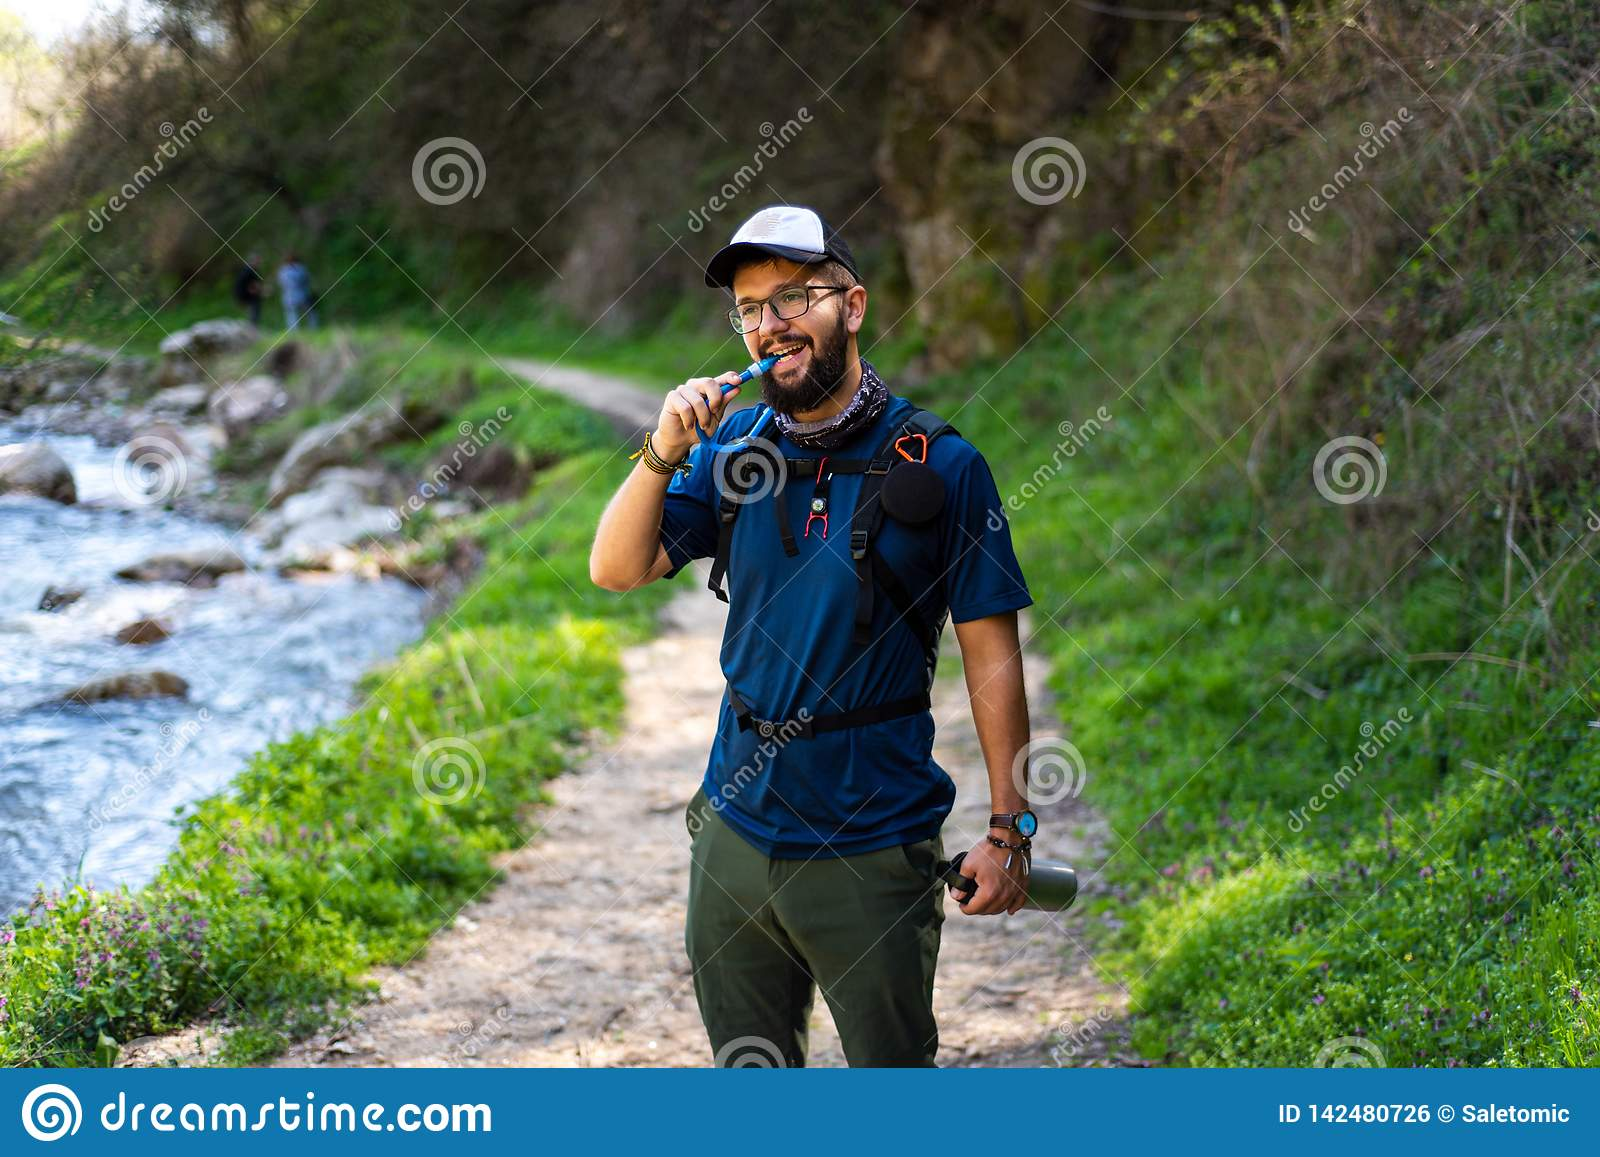 Man hiking and hydrating with water pipe